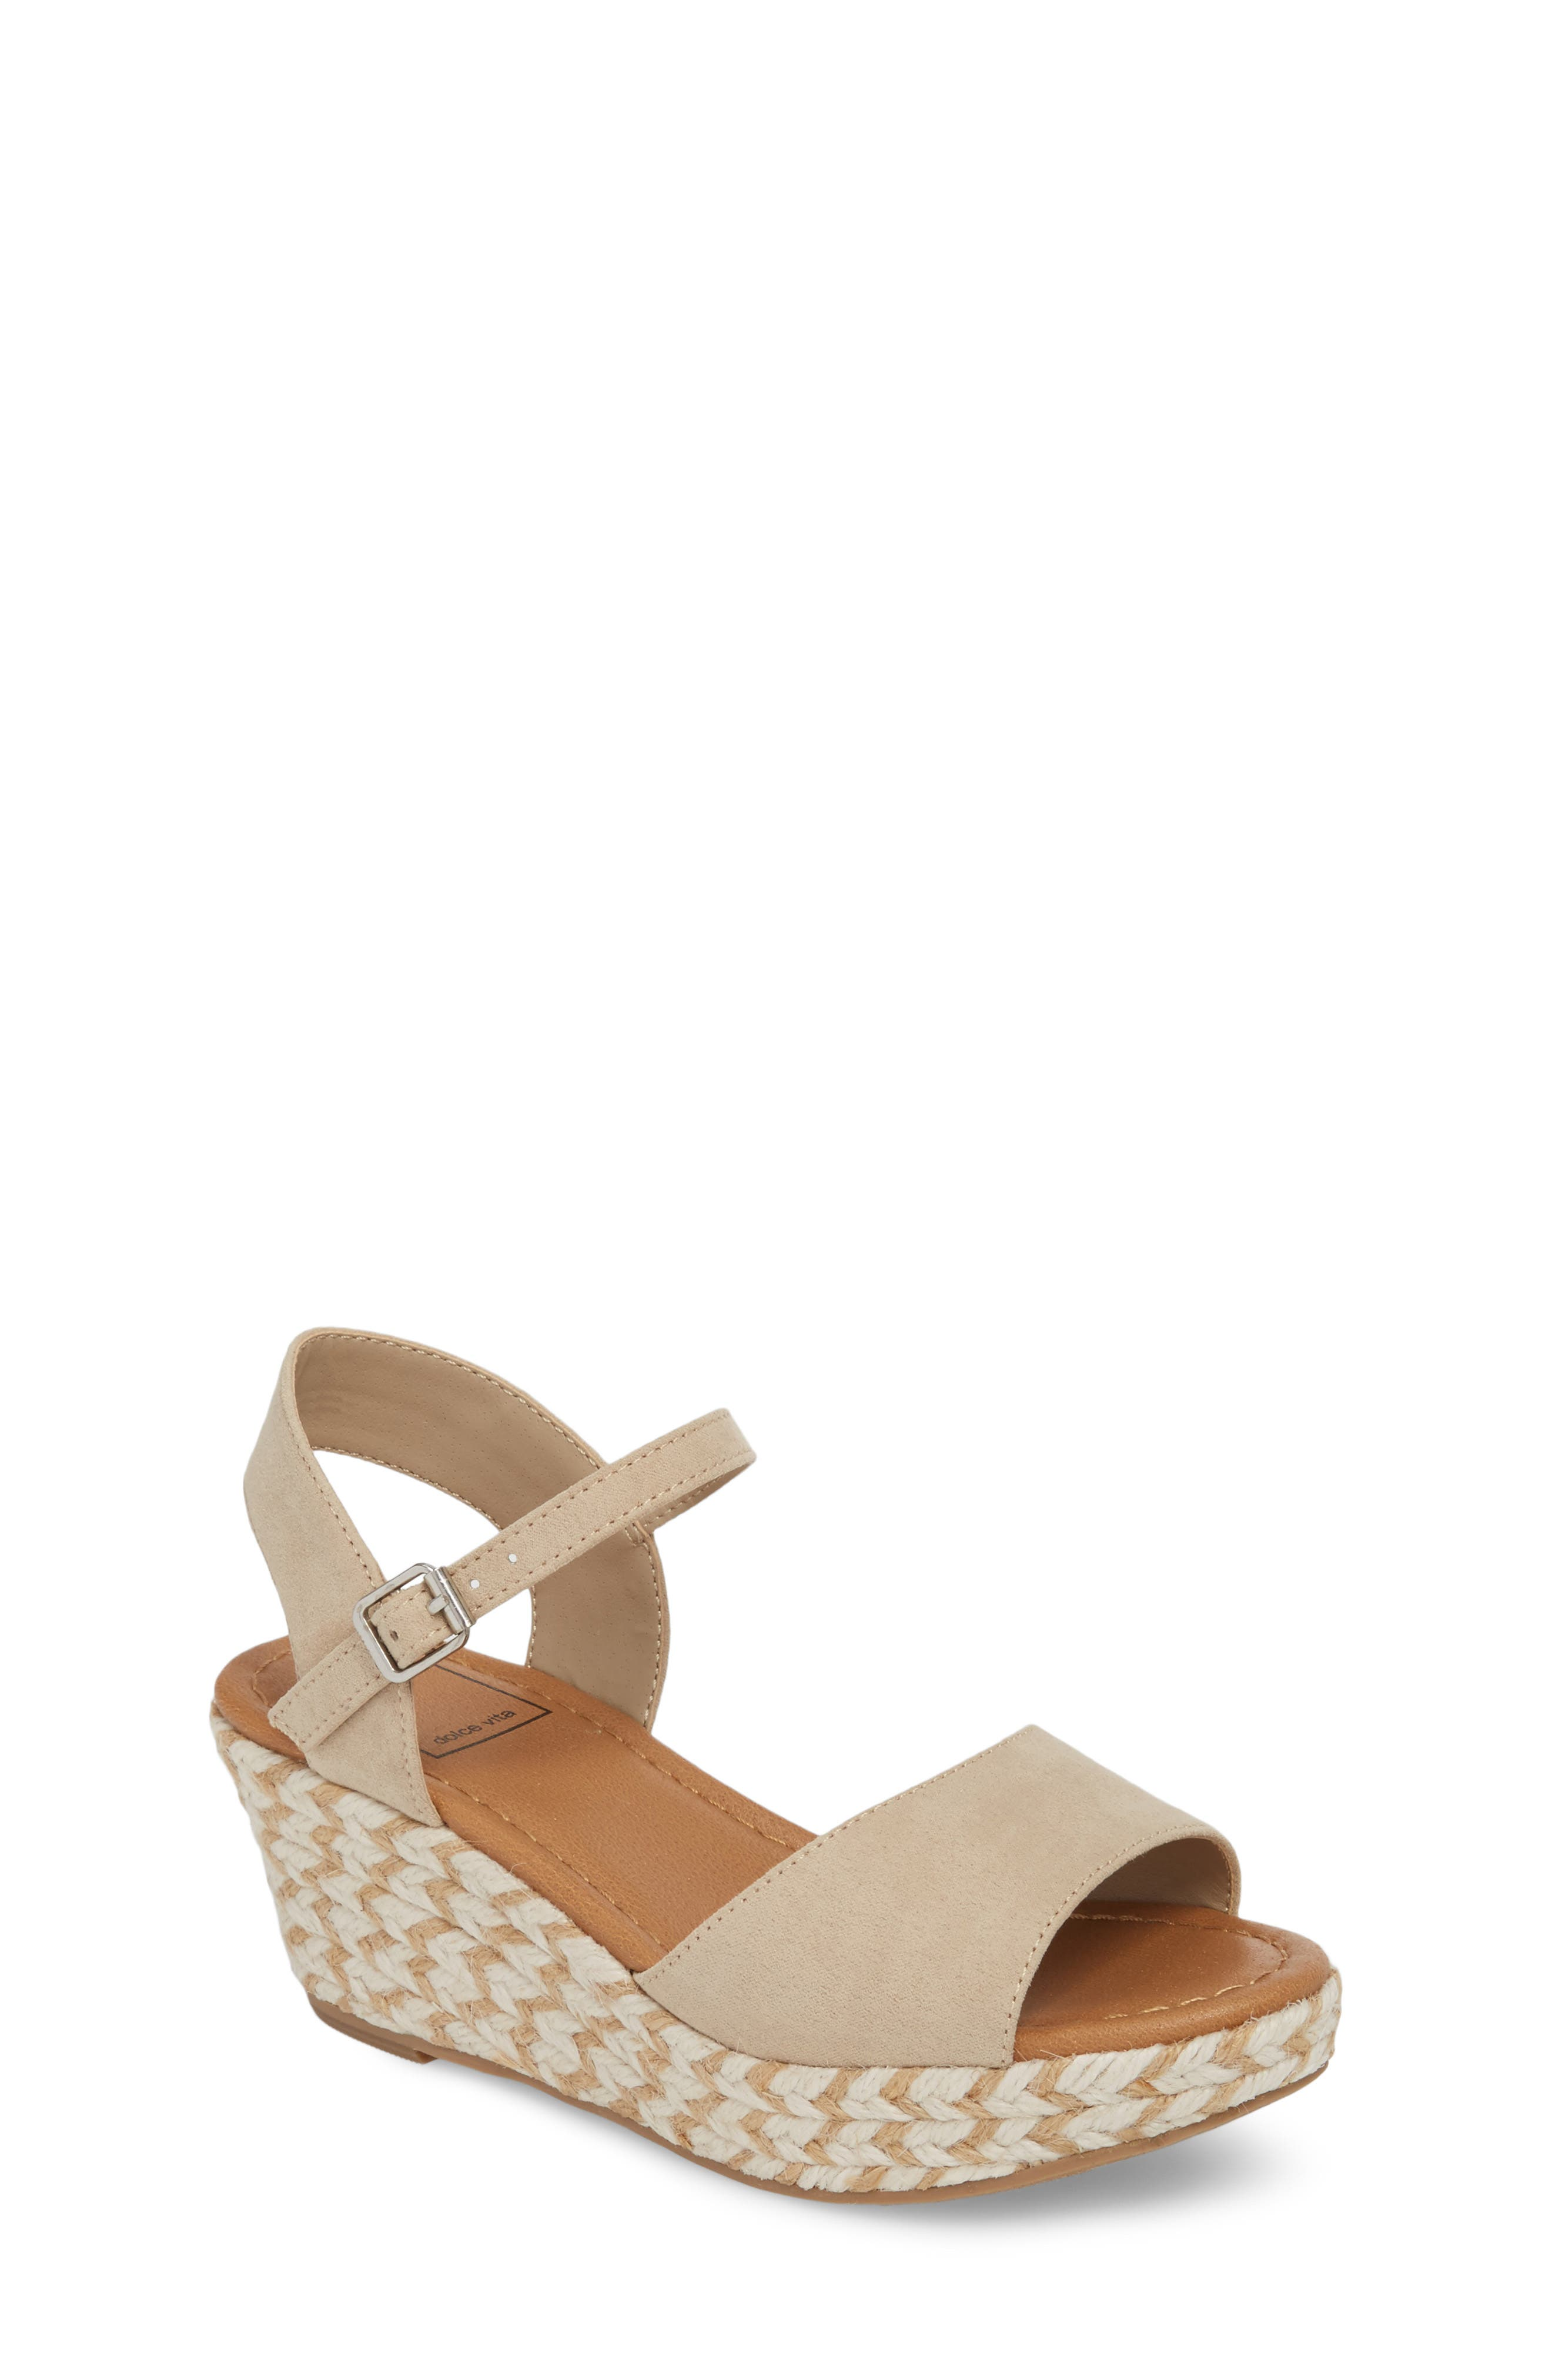 Wendy Espadrille Wedge Sandal,                             Main thumbnail 1, color,                             277